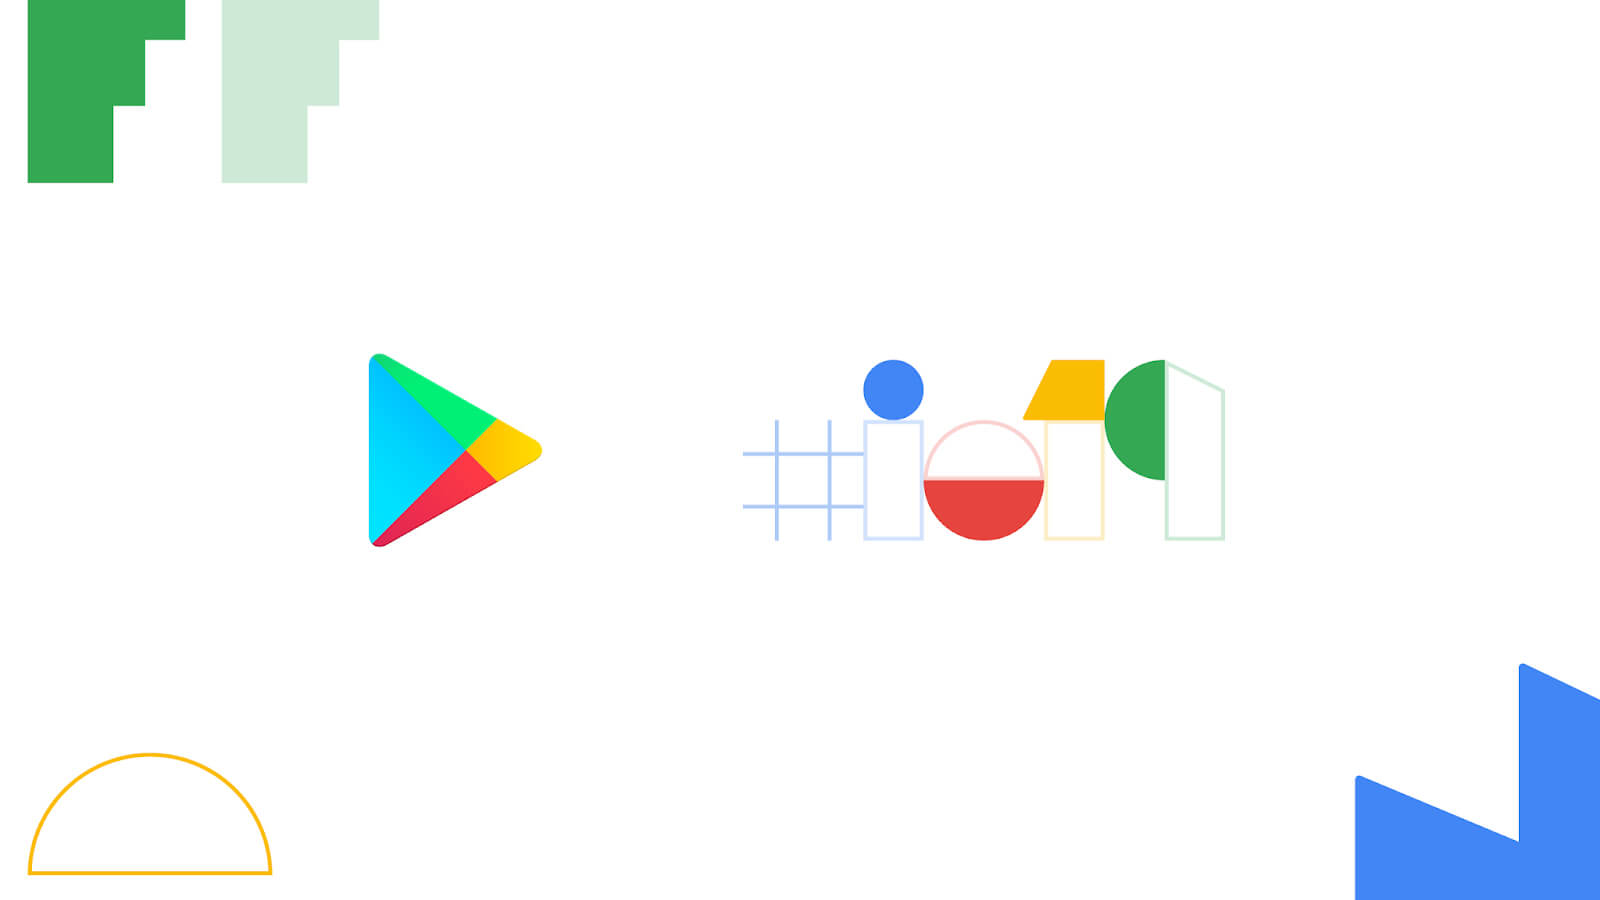 Google is tweaking the Play Store's app rating system to